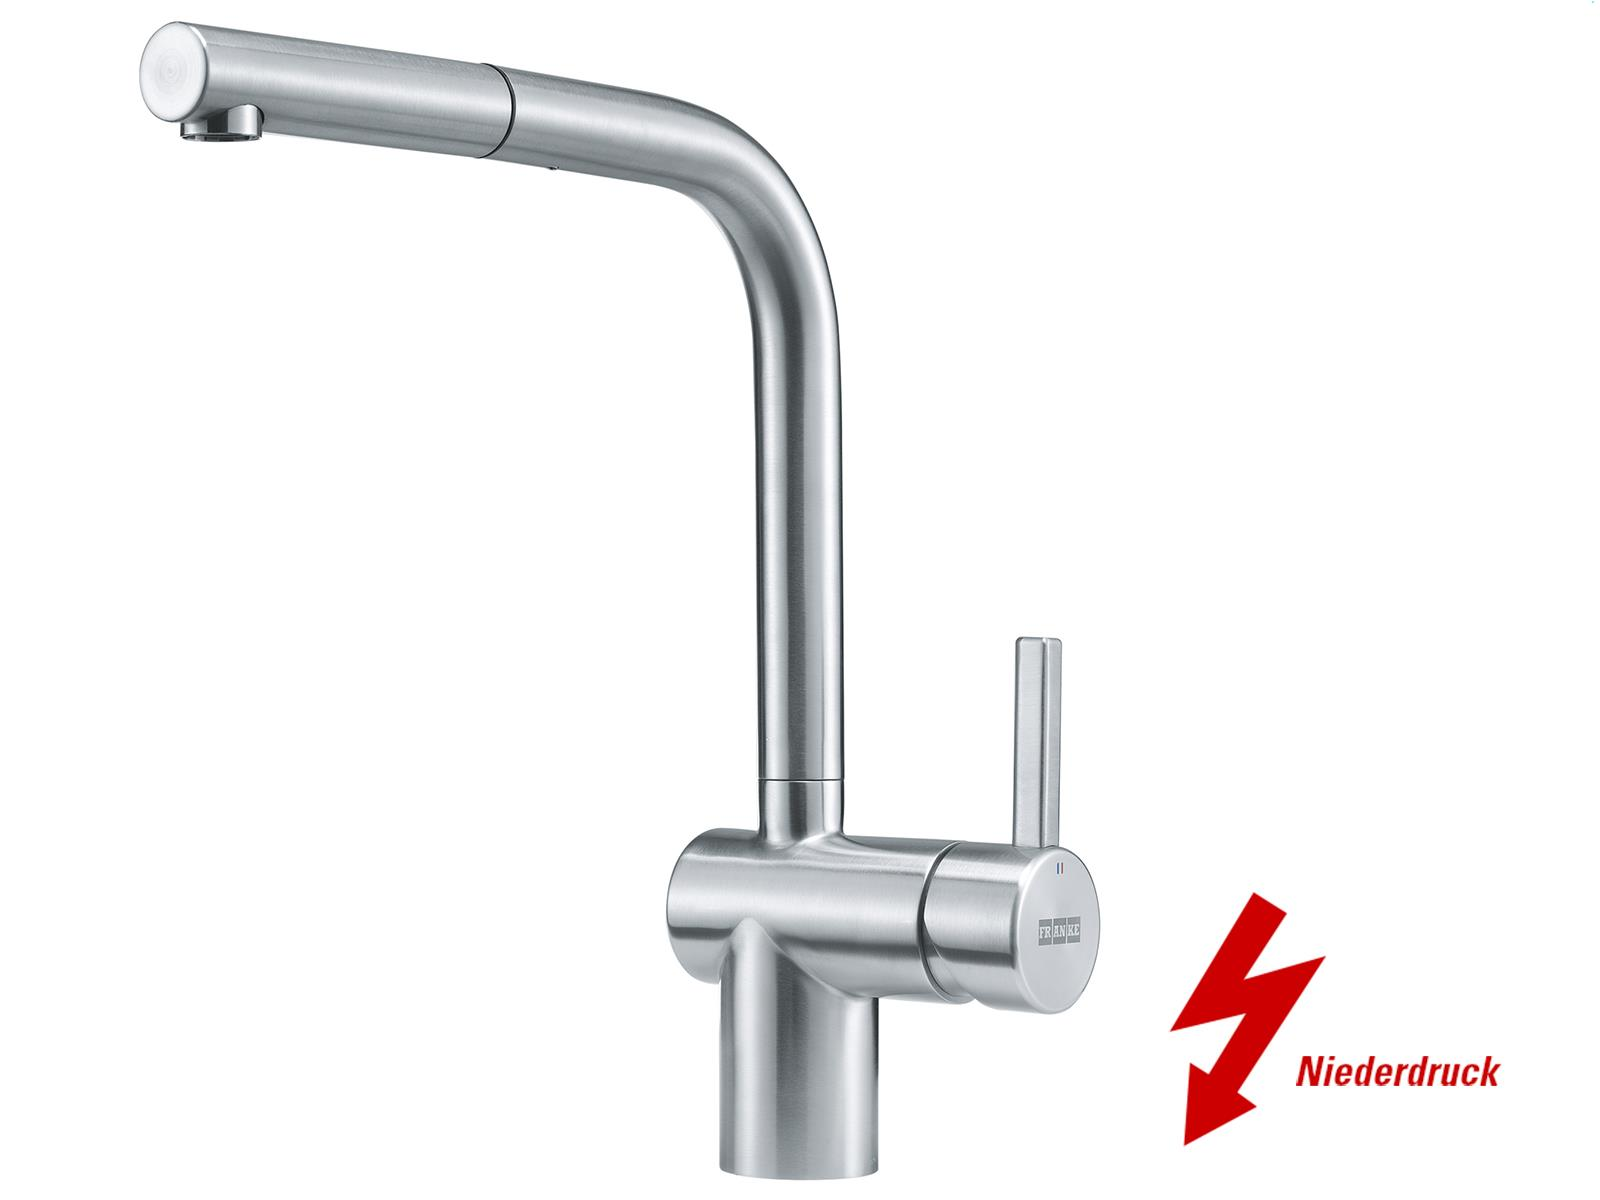 Full Size of Grohe Niederdruck Armatur Küche Niederdruck Armatur Küche Hornbach Niederdruck Armatur Küche Schwarz Niederdruck Armatur Küche Hagebaumarkt Küche Niederdruck Armatur Küche